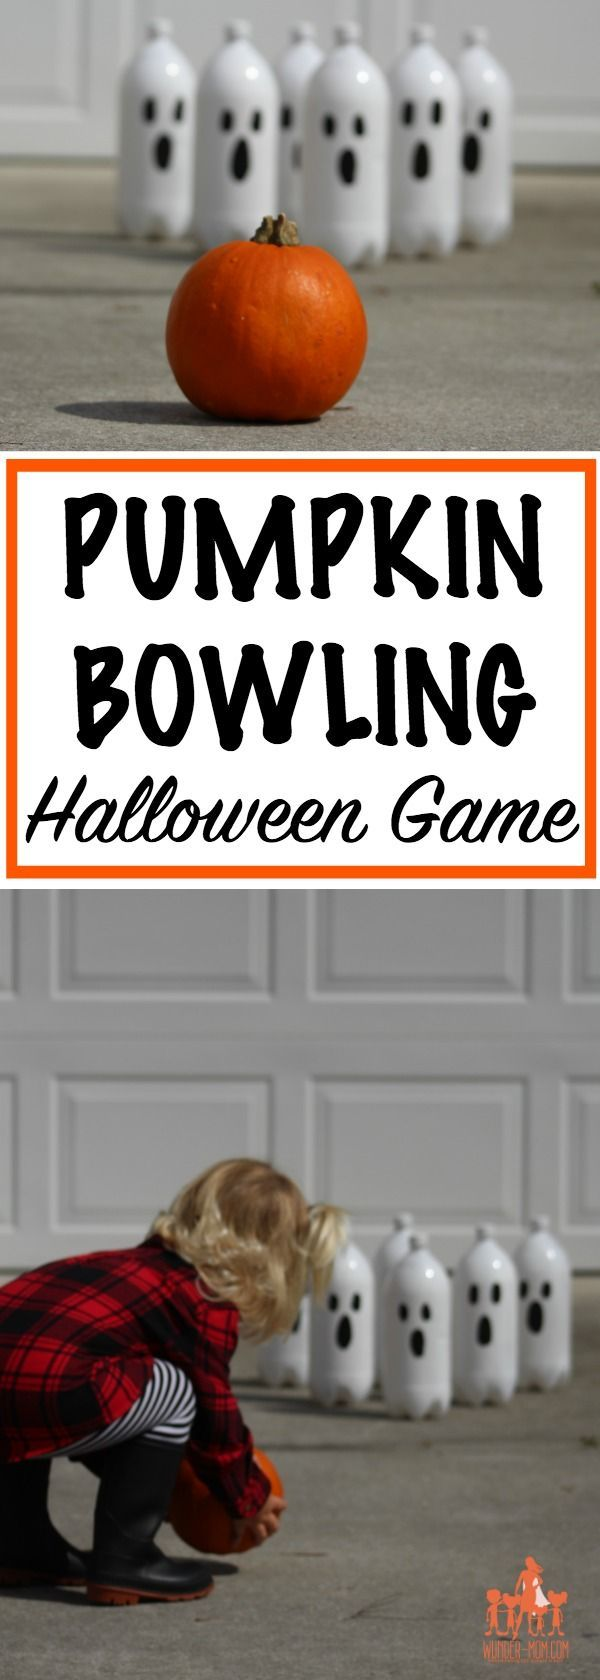 This fun DIY Pumpkin Bowling game is perfect for a Halloween Party or Fall Festival! Weather you're throwing a Halloween Party or Fall Festival or just want a fun game to play with the kids – this Halloween Activity is great!  Pumpkin Bowling is a fun game for all ages, let the little ones have a turn or turn it into a competitive game for the older ones.  If you are planning on a fall festival at your school or church, this Carnival style game is easy to make and doesn't cost much – perfect…